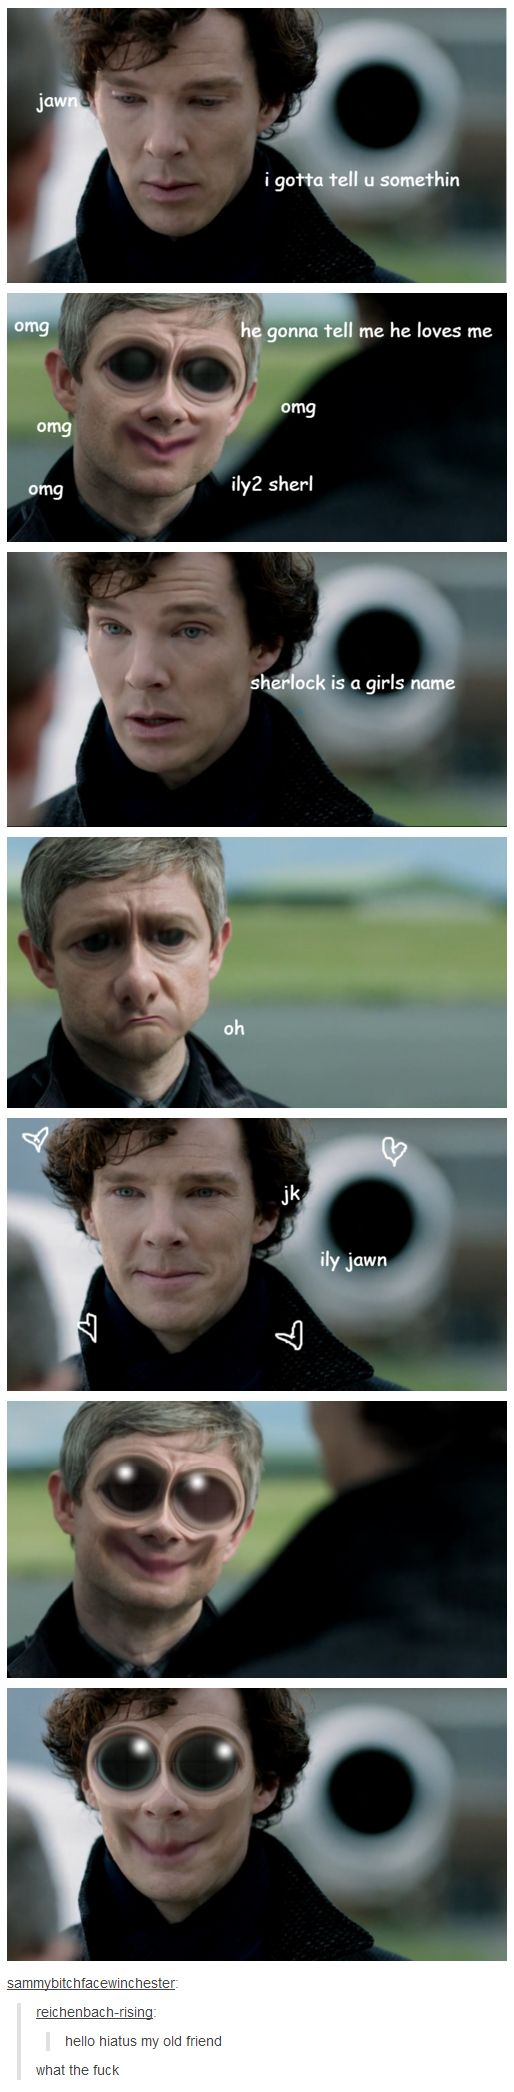 ah... sweet, sweet hiatus... Sorry for the language. Don't ship Johnlock, but this was too funny not to pin.